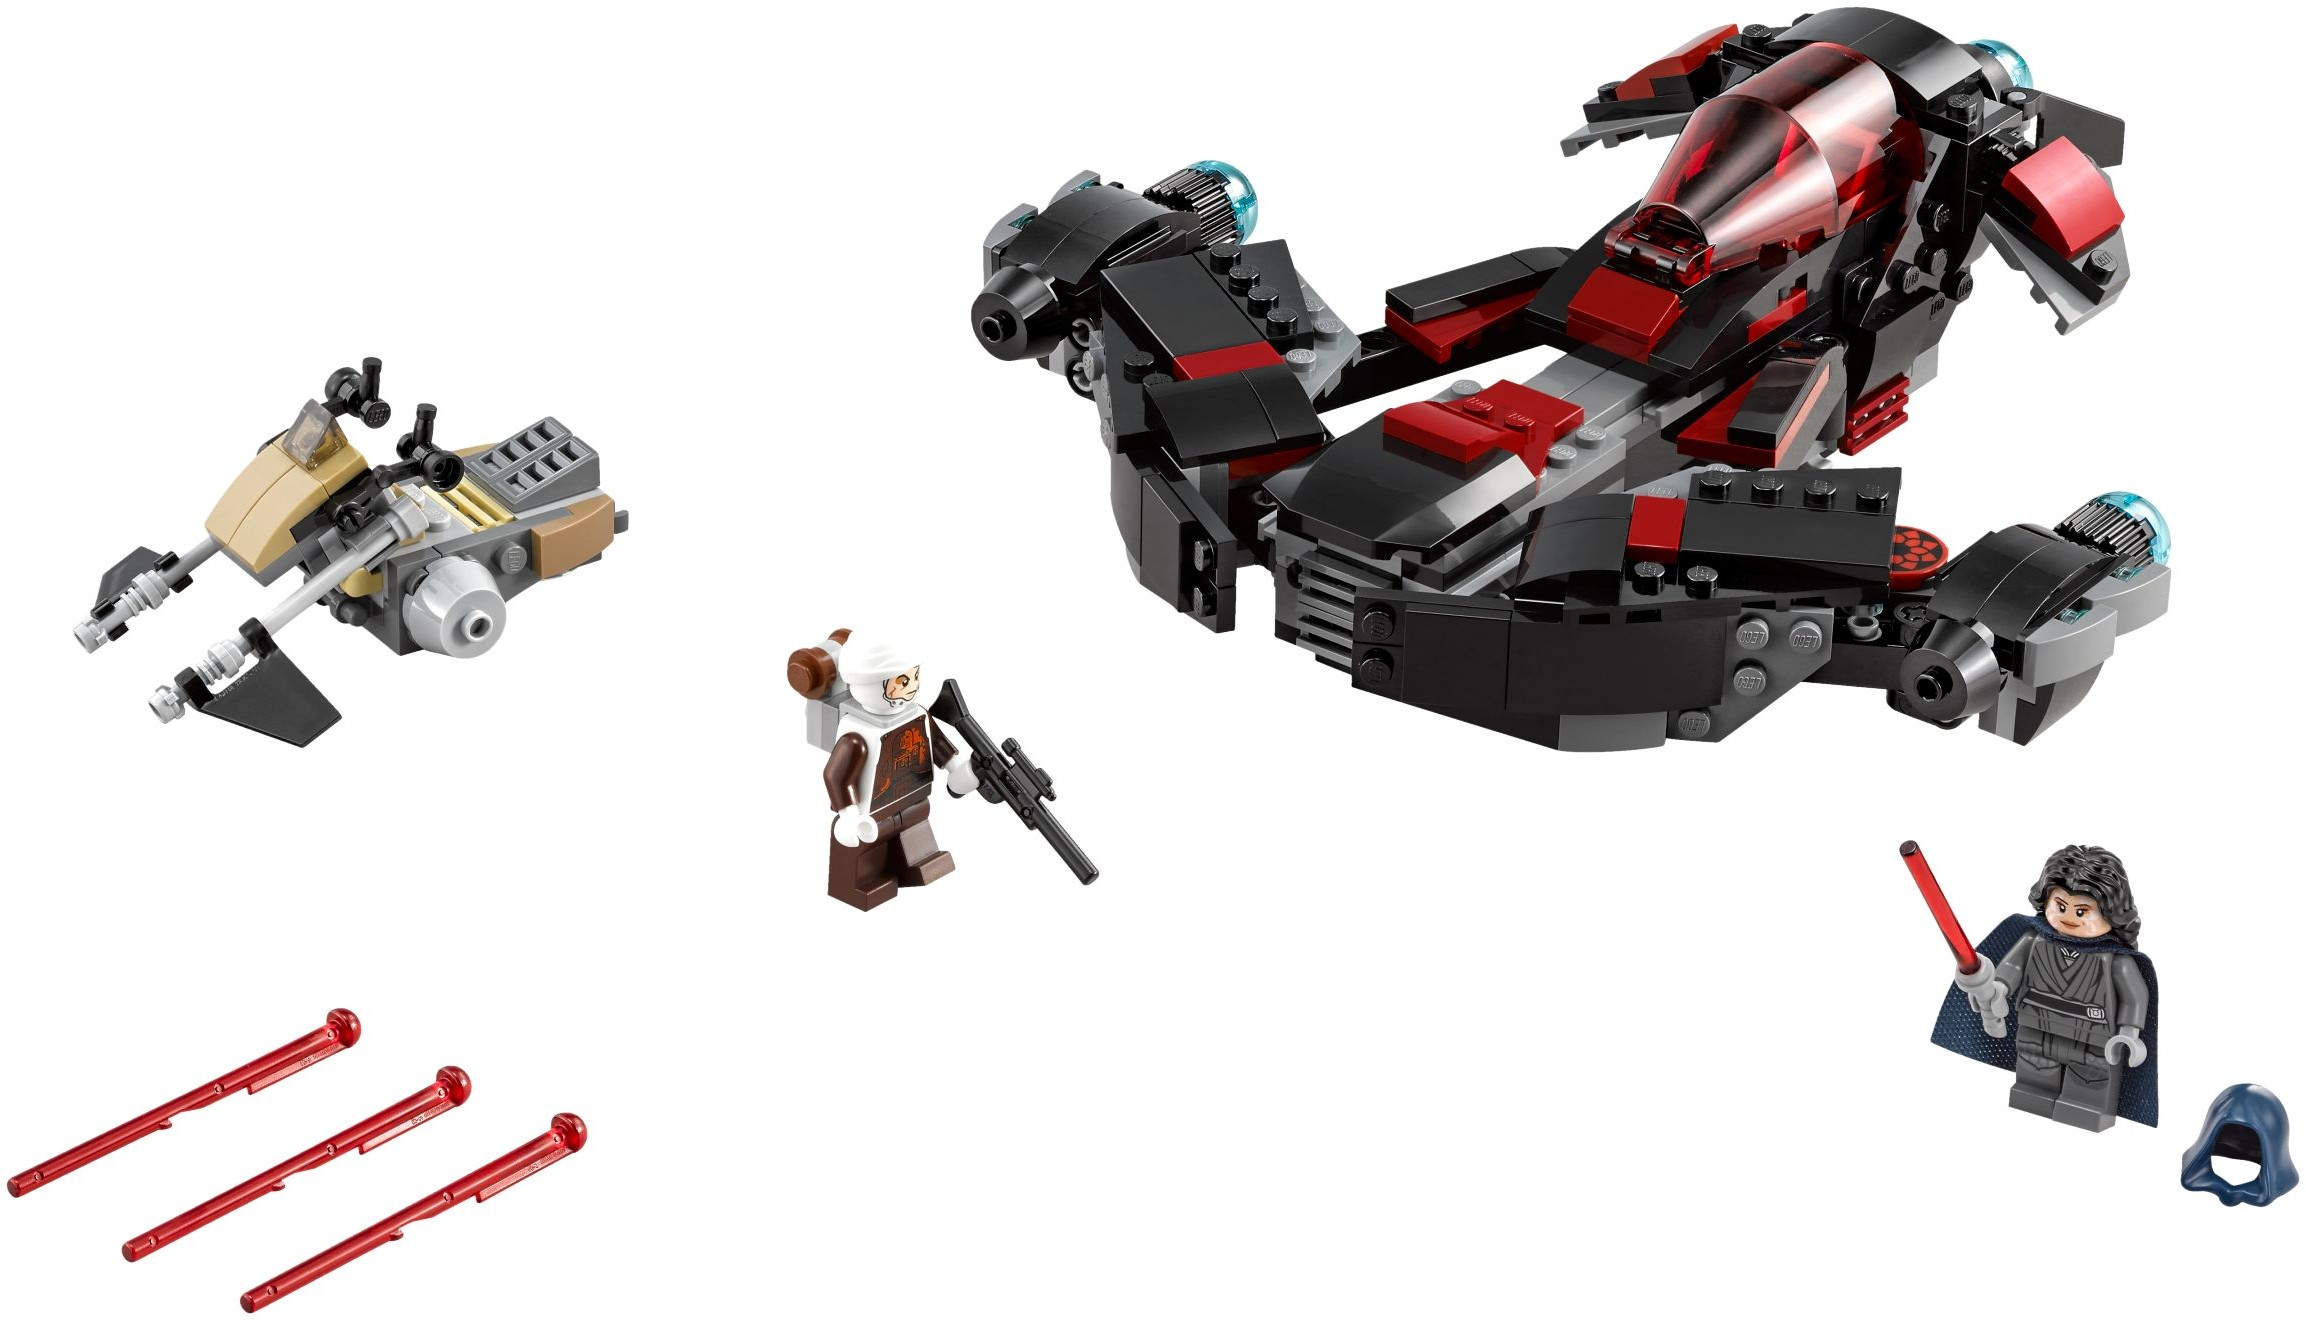 Star Wars And Lego: Taking Over The Galaxy